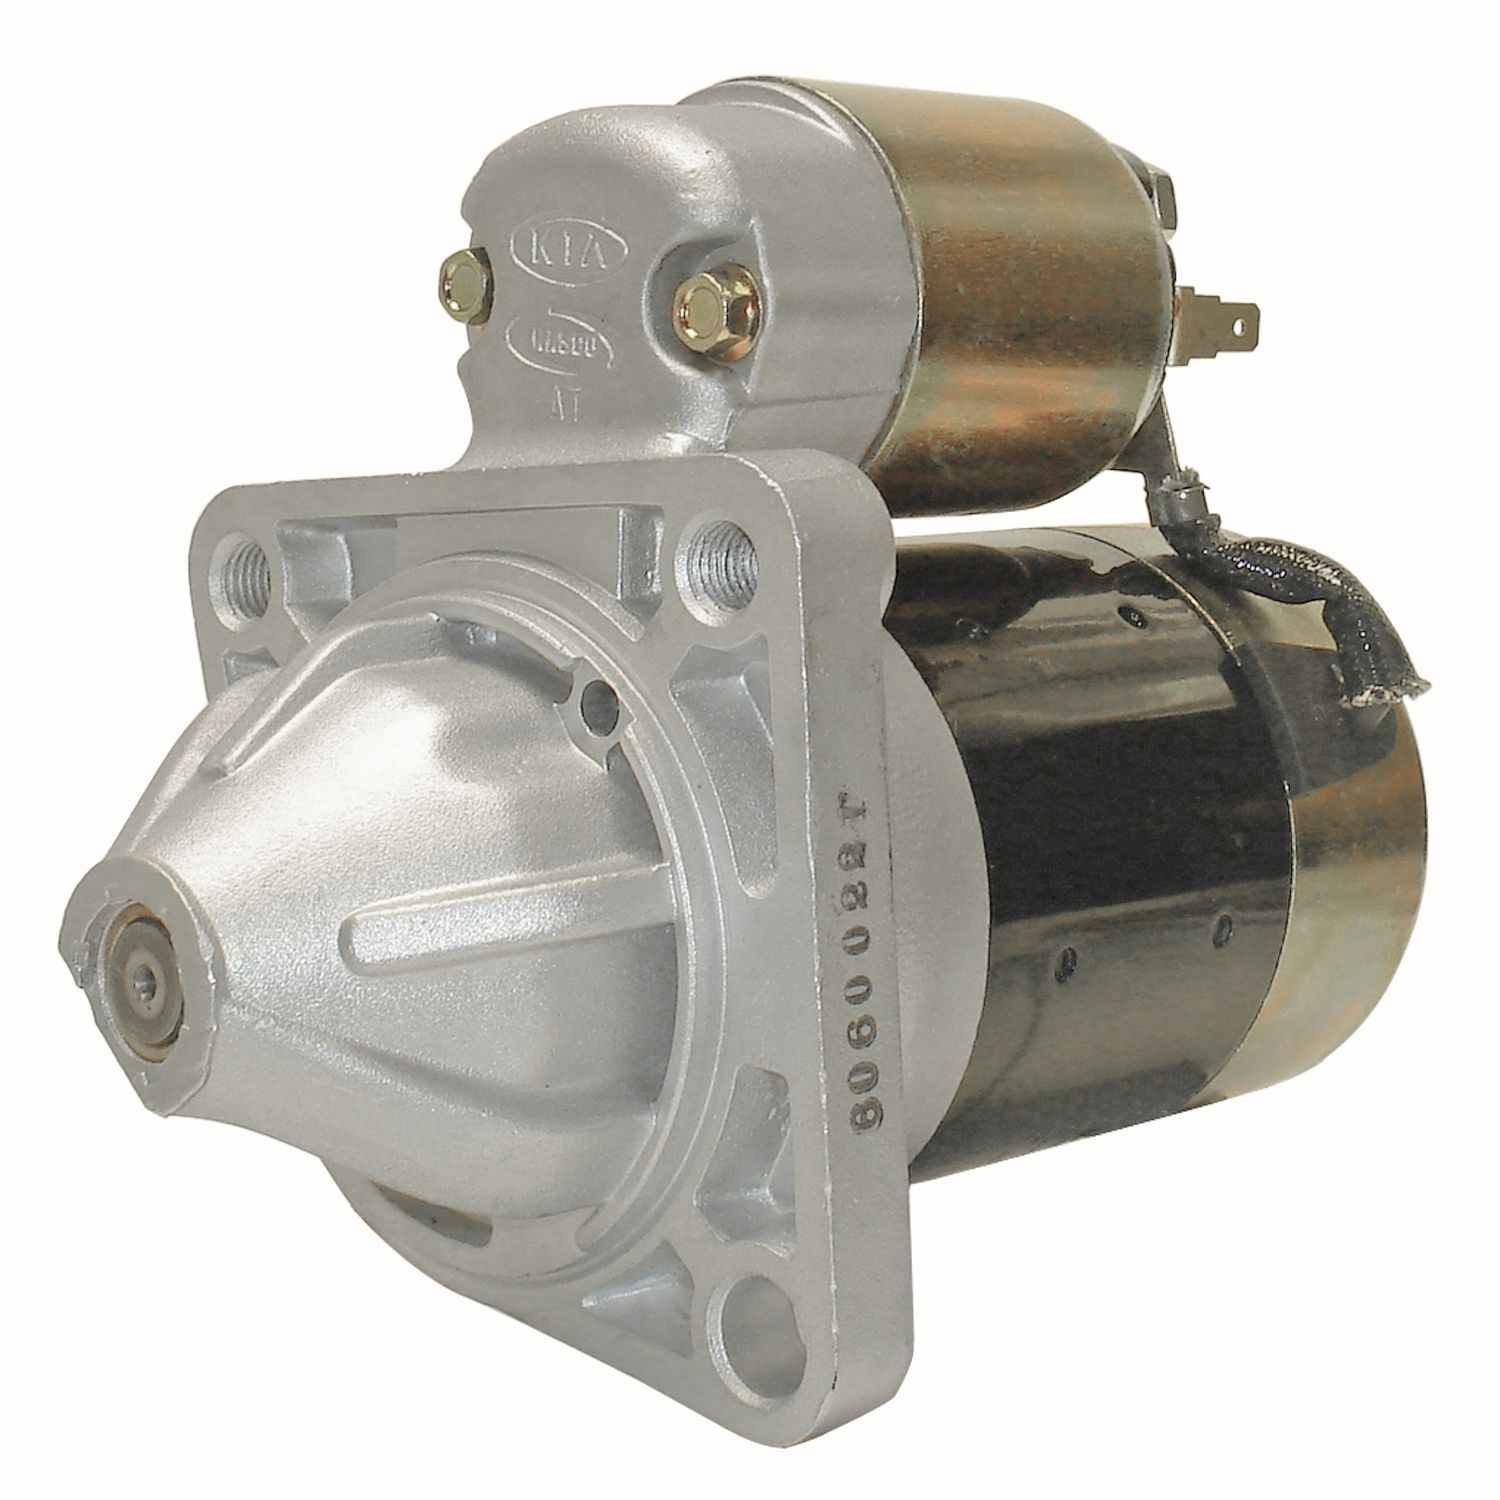 ACDELCO GOLD/PROFESSIONAL - Reman Starter Motor - DCC 336-1222